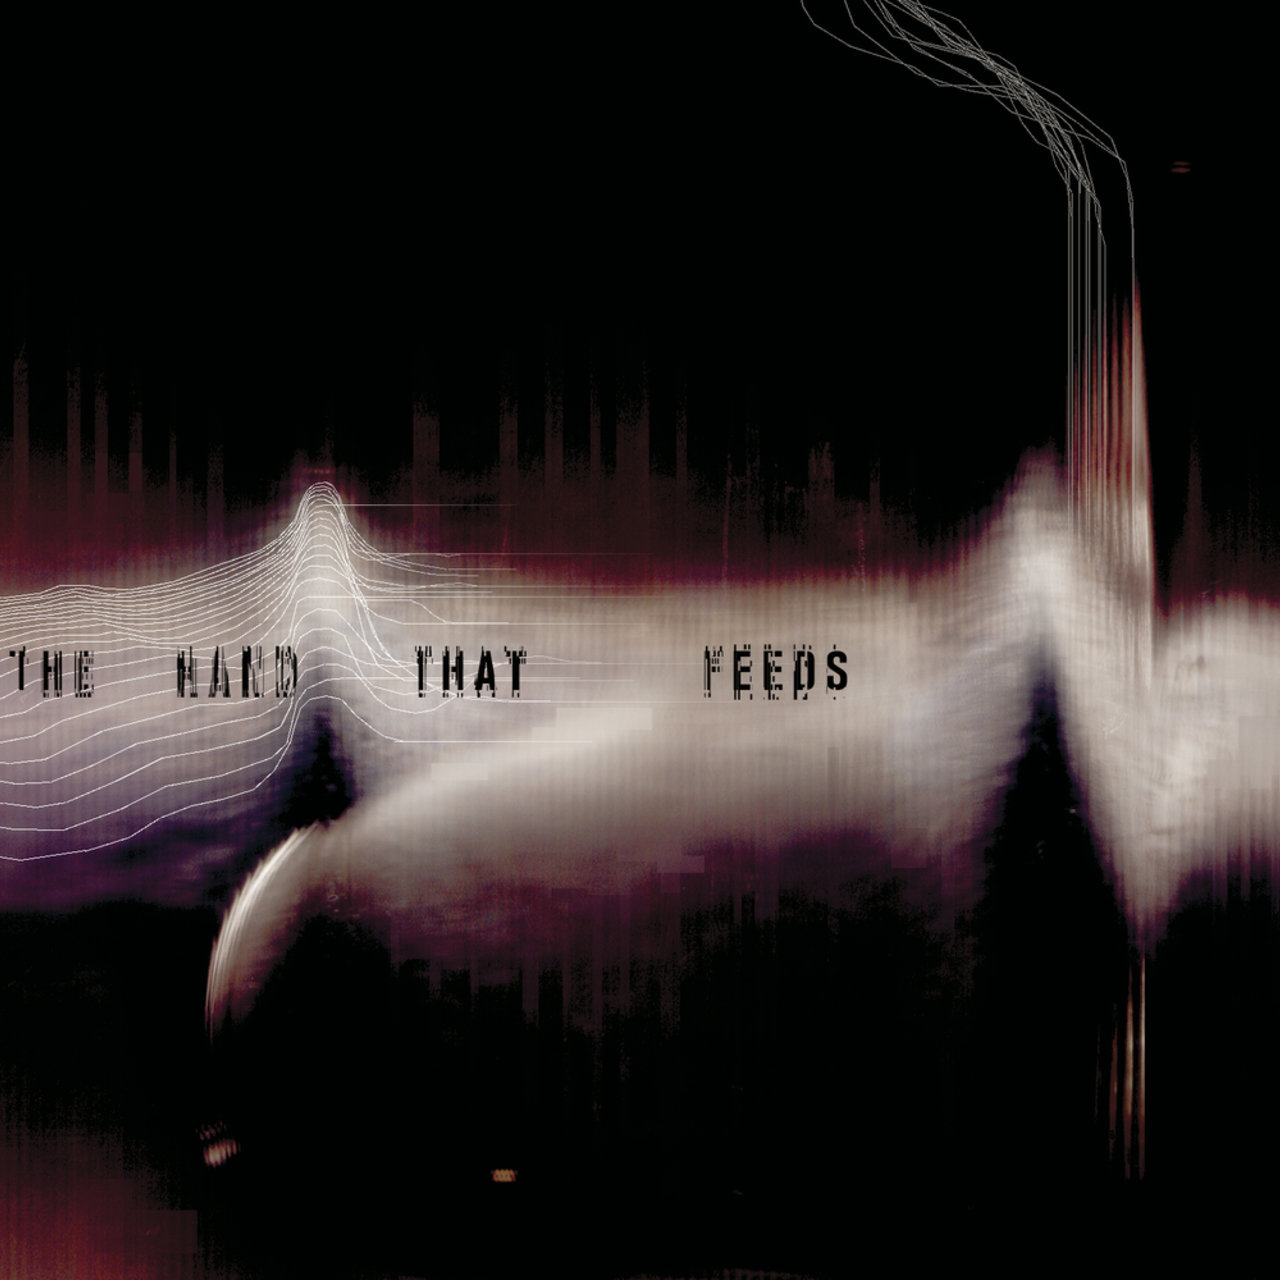 TIDAL: Listen to The Hand That Feeds by Nine Inch Nails on TIDAL